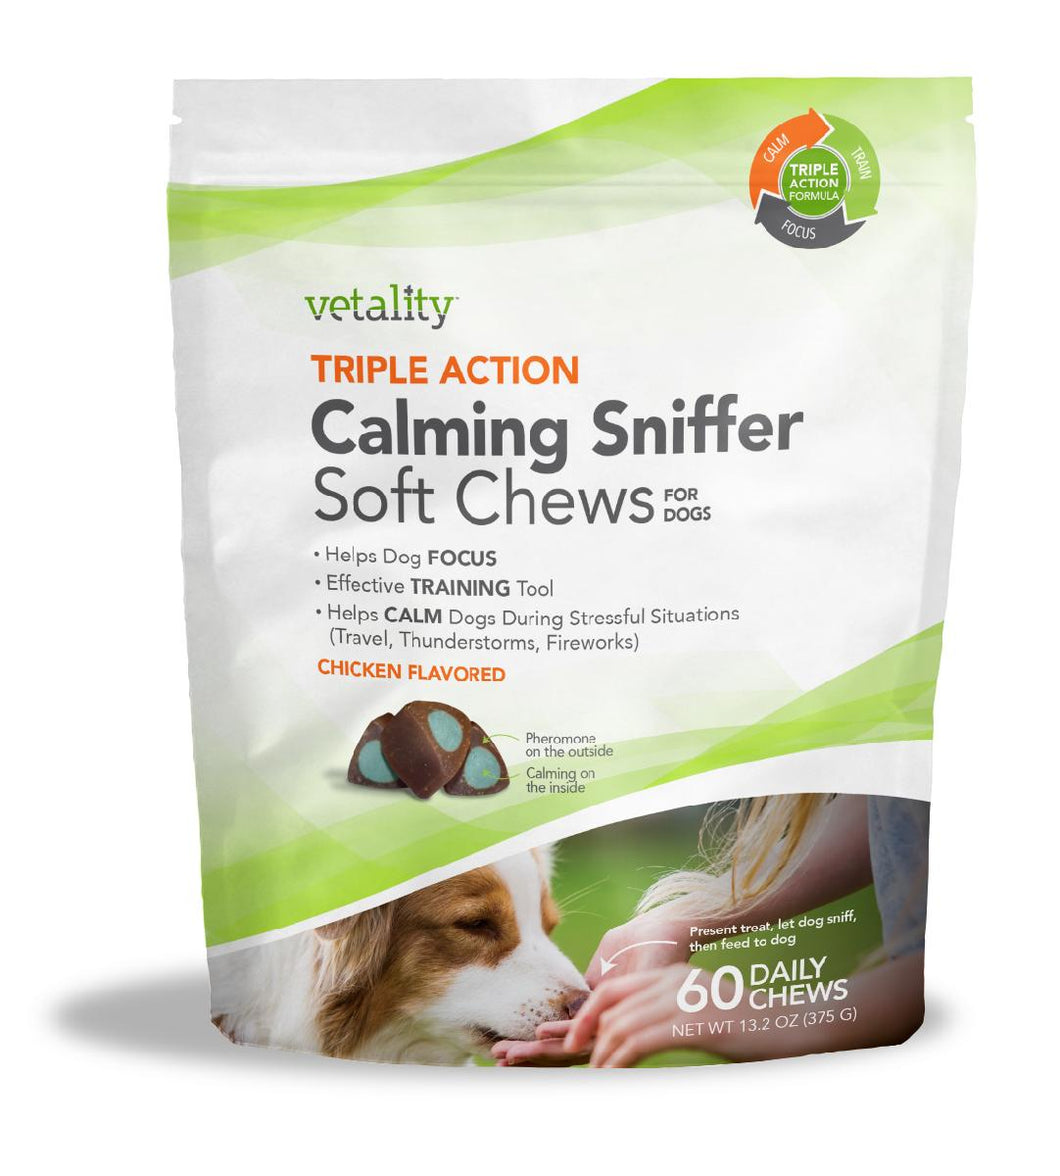 Vetality Calming Sniffer Soft Chews